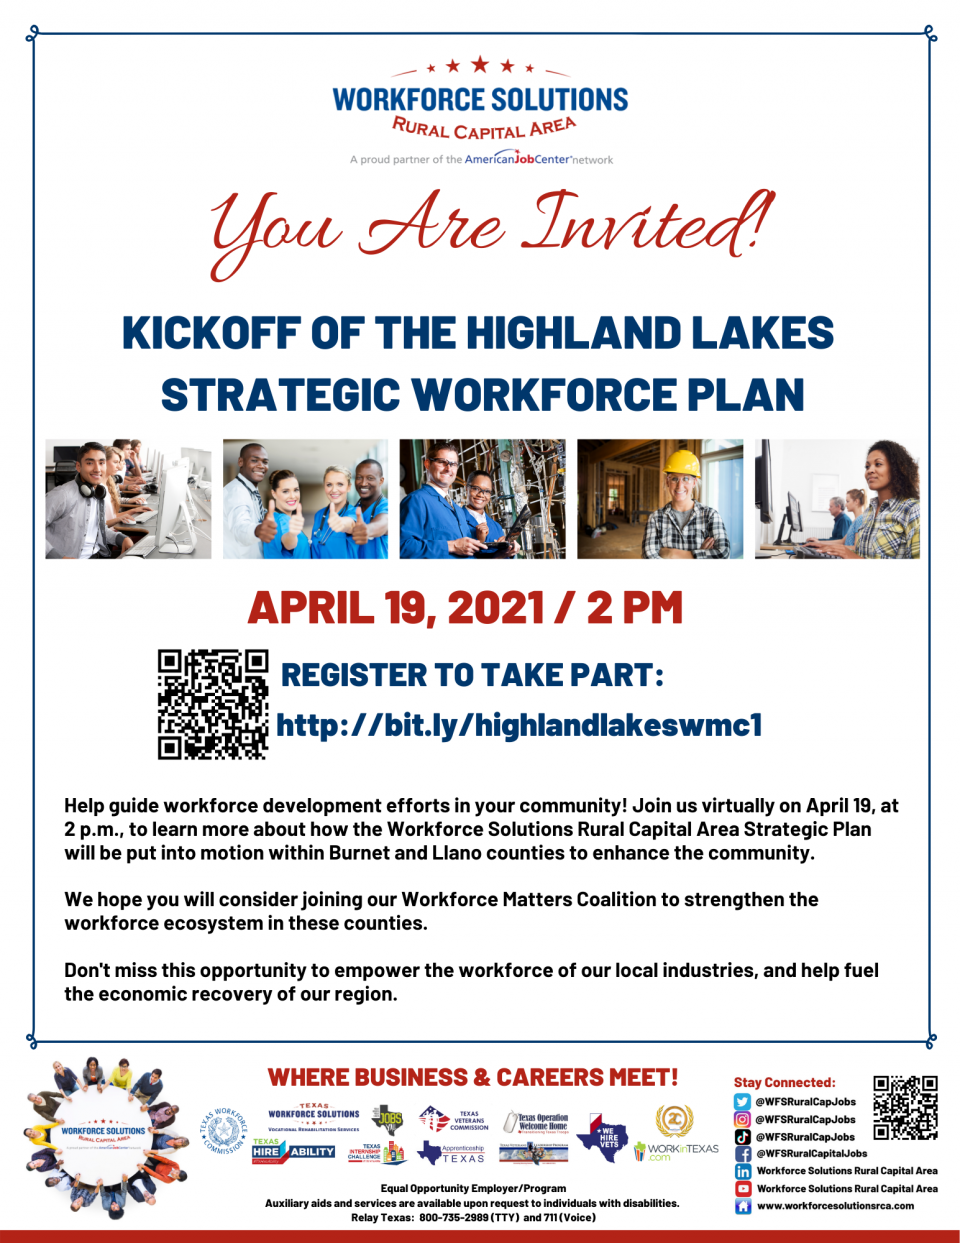 Celebrate the Kickoff of the Highland Lakes Strategic Workforce Plan